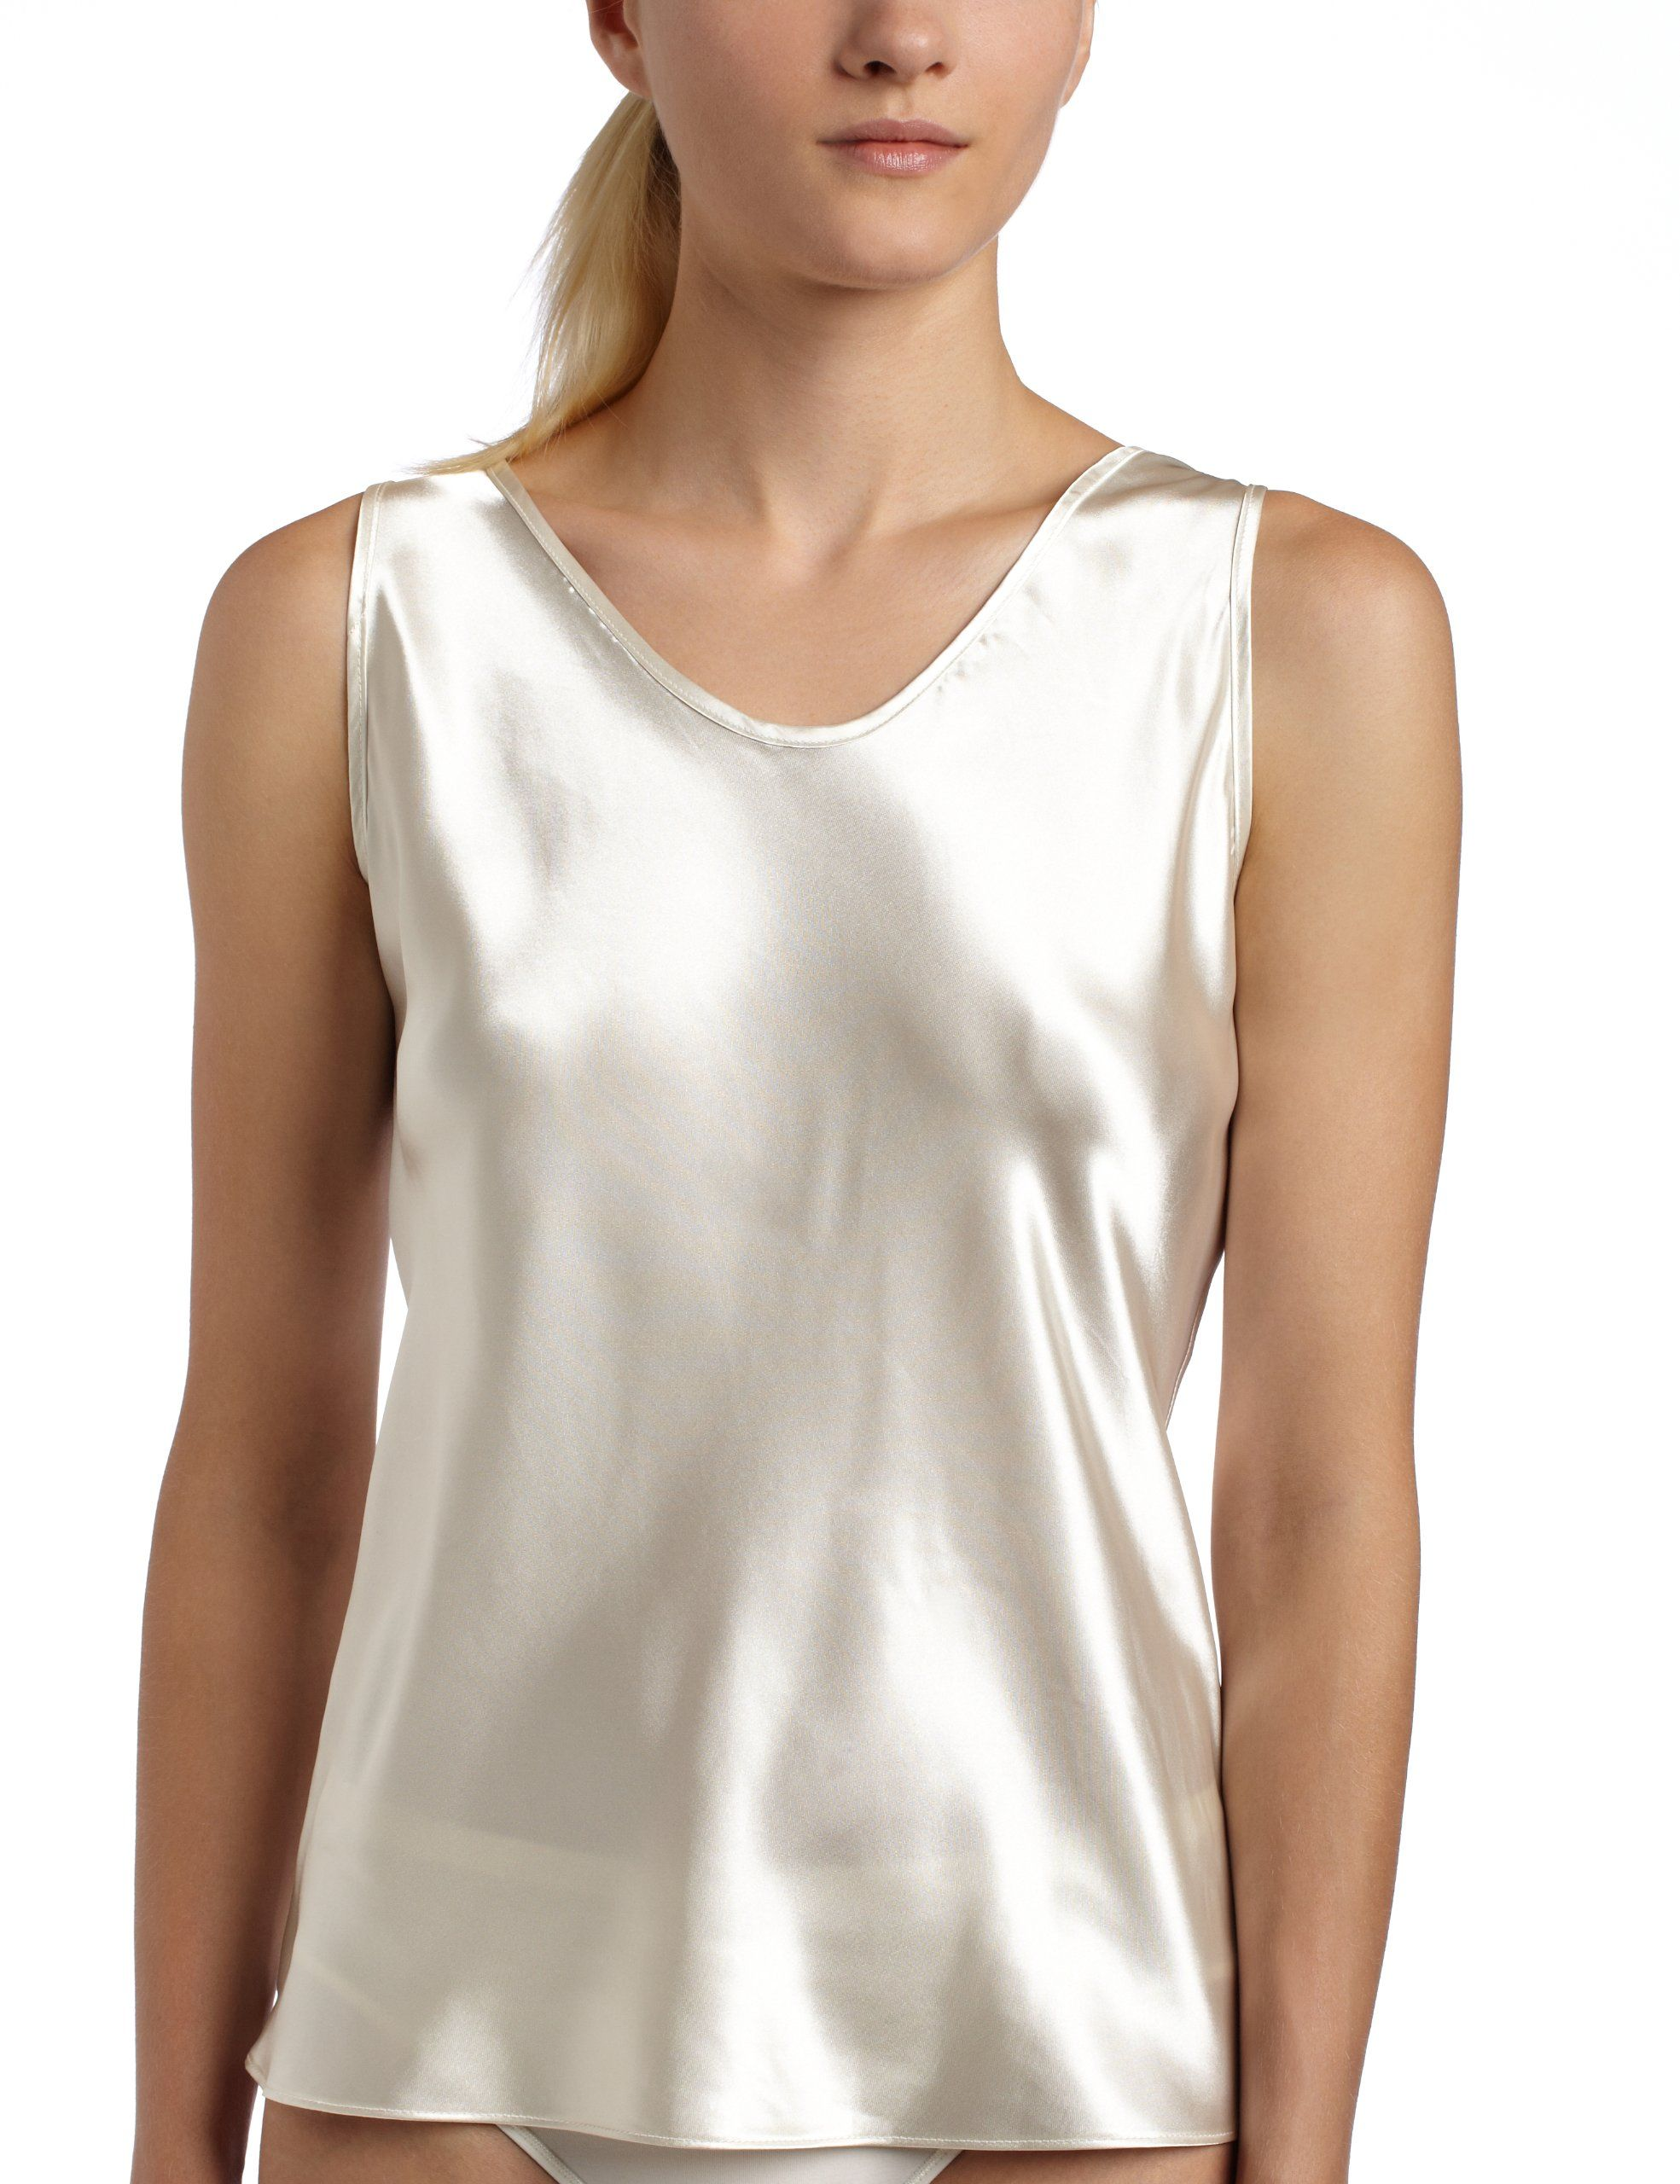 b8625941b2605 white satin camisole top - Google Search